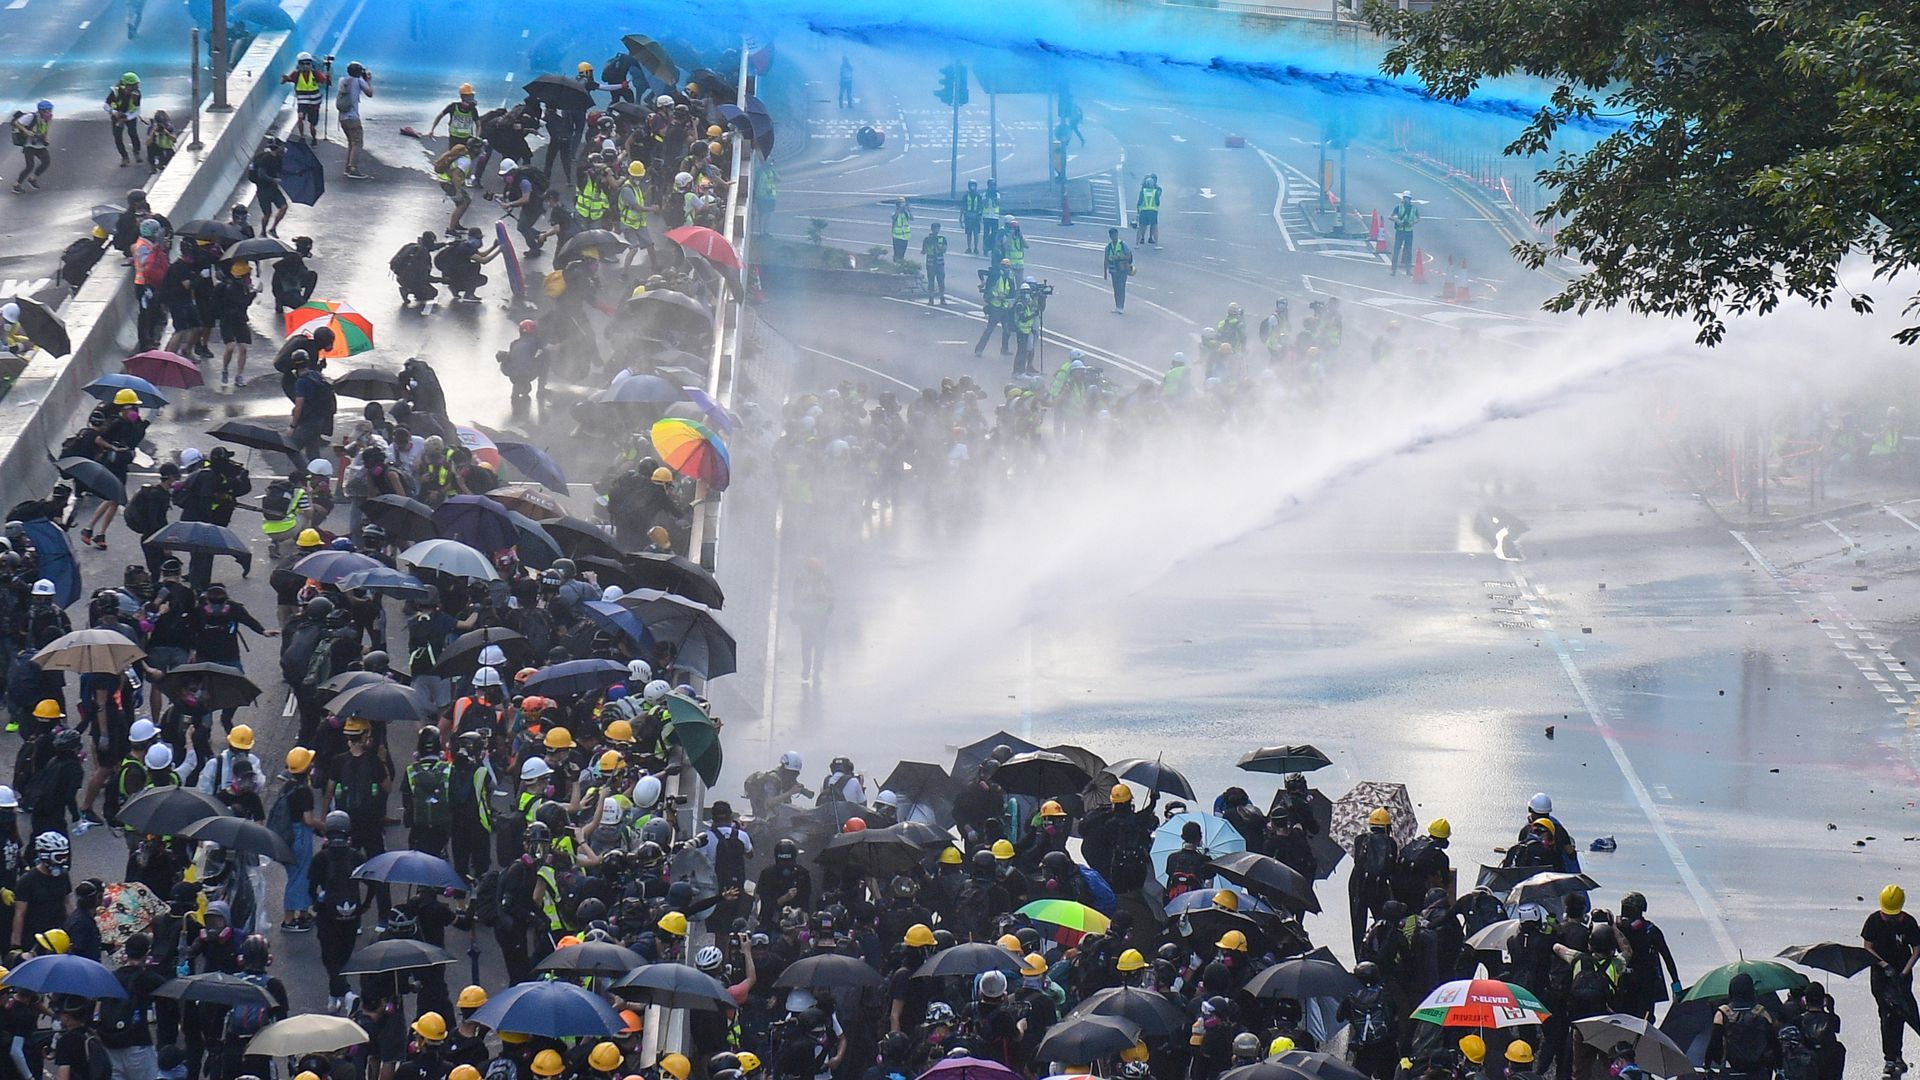 Pro-democracy protesters react as police fire water cannons outside the government headquarters in Hong Kong on September 15